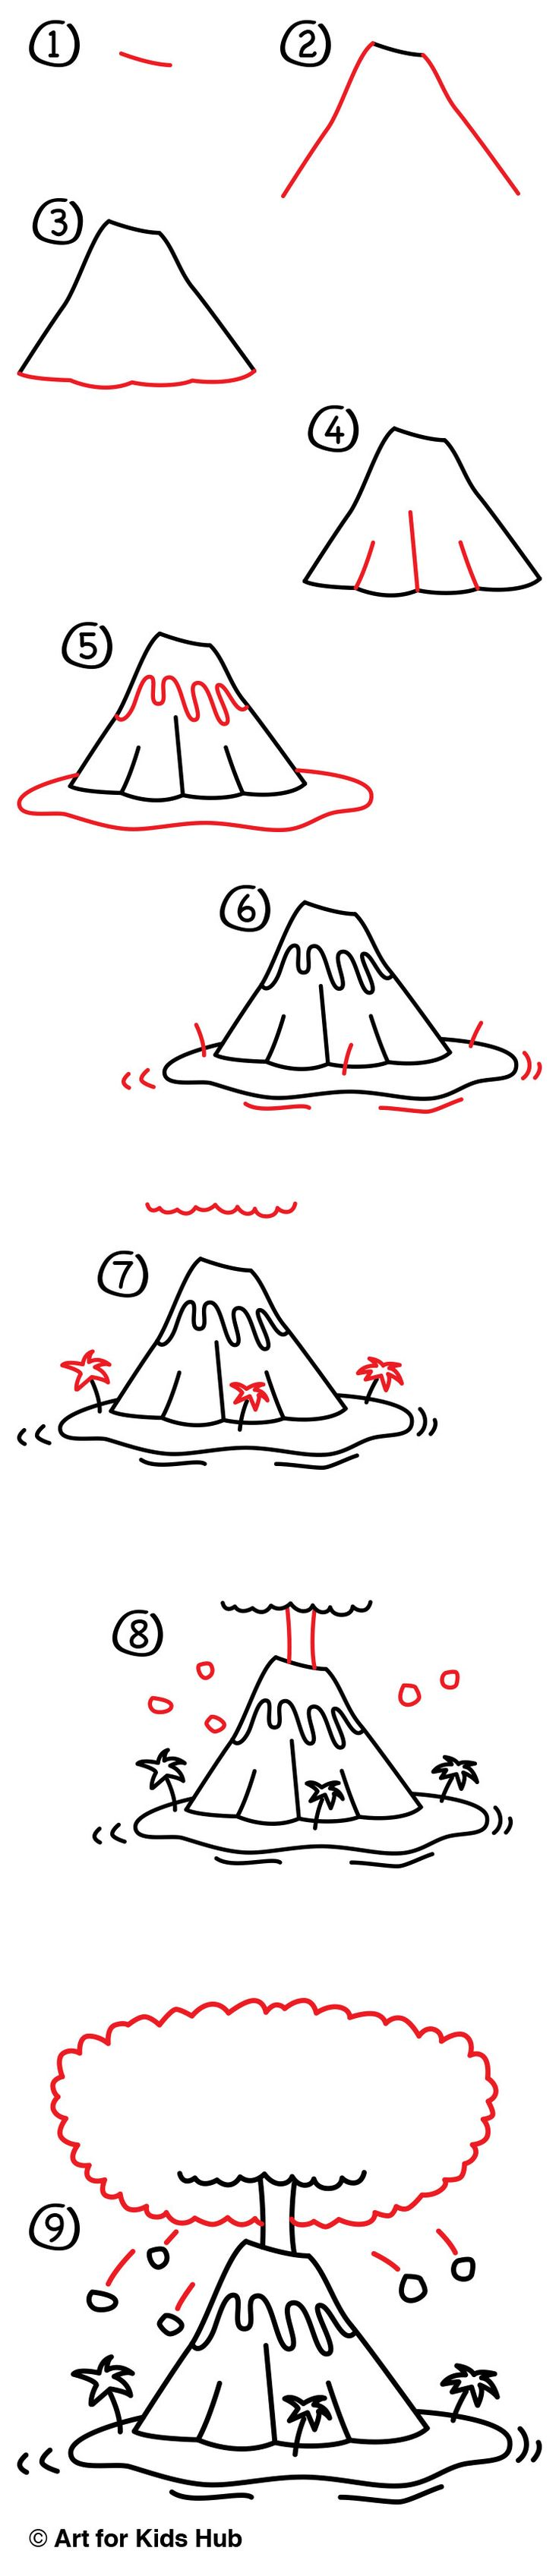 Learn how to draw a volcano erupting and exploding hot lava everywhere! After watching this lesson and following along with us, be sure to add your own details. You could add people on the beach or planes in the sky. Make it awesome, and make it yours!